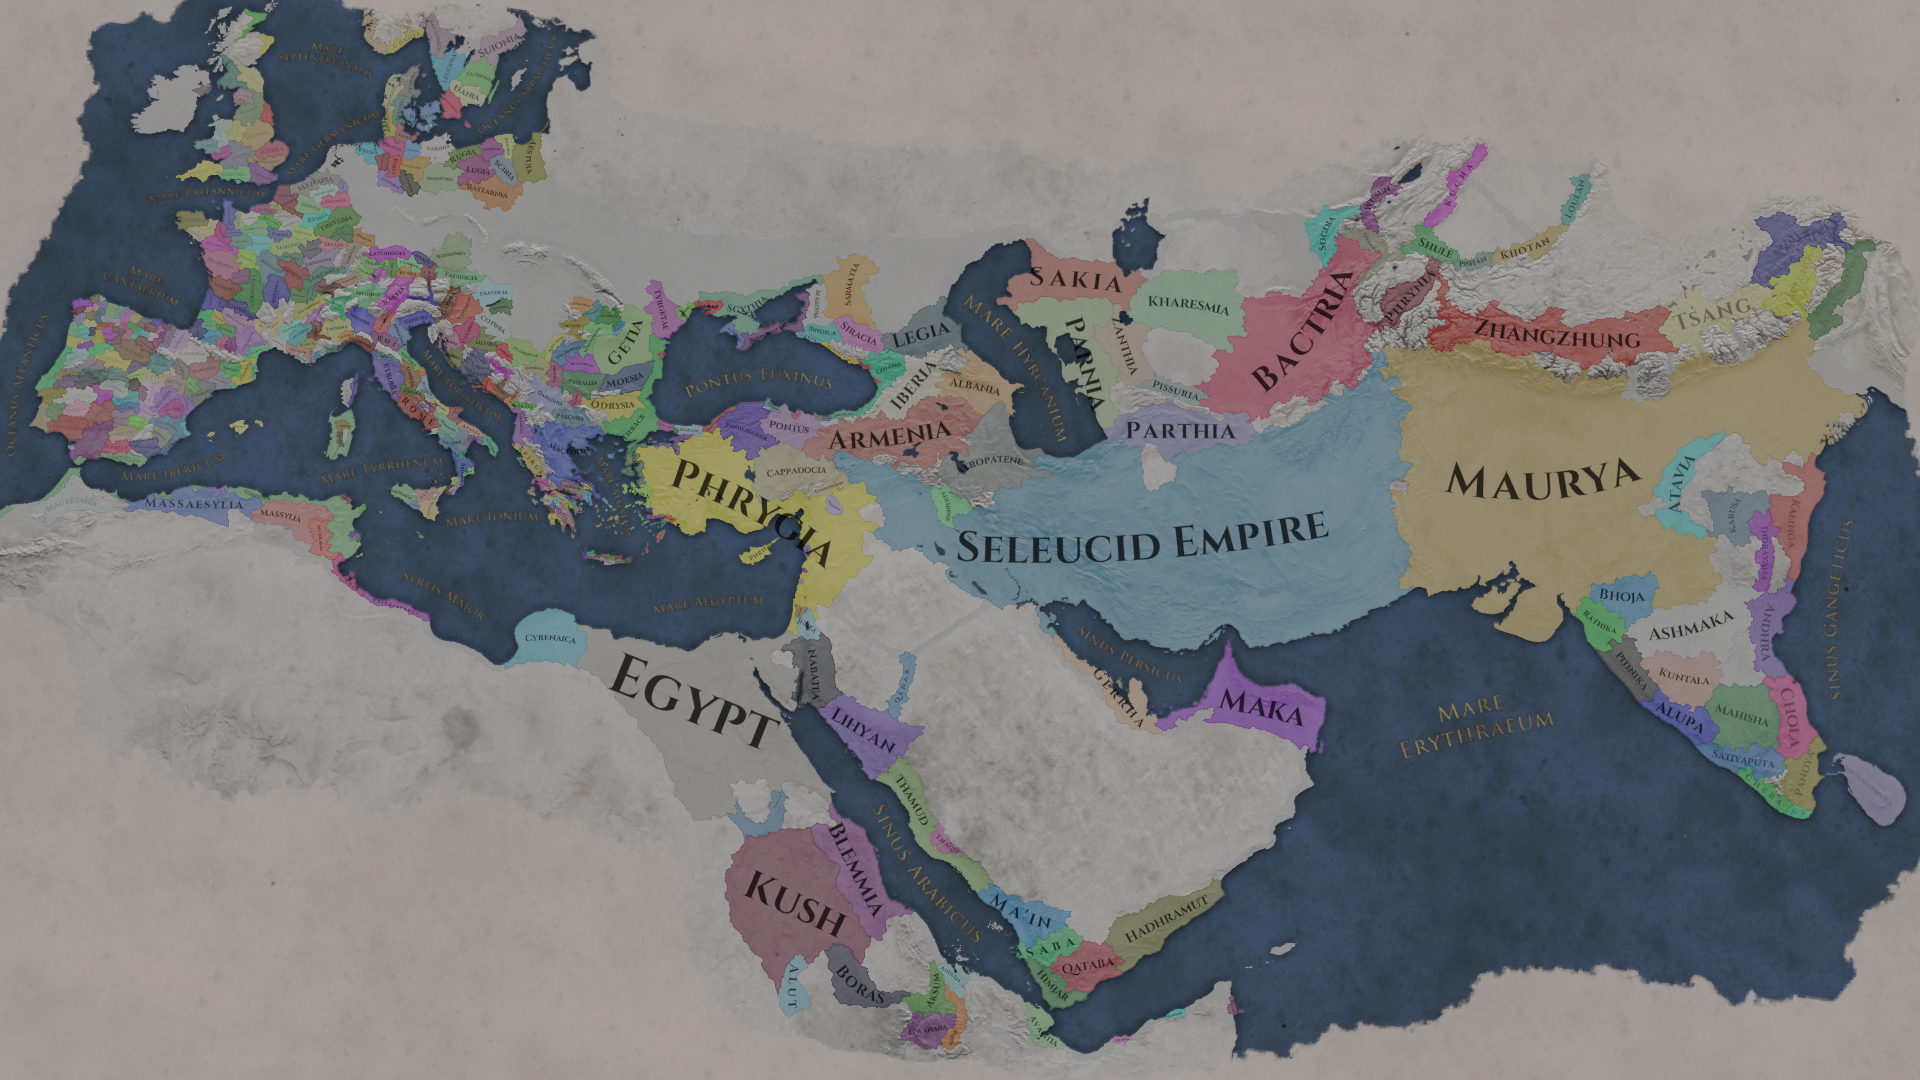 Imperator: Rome World Map - Full Size Map Revealed   GameWatcher on ottoman map of the world, chicago map of the world, london map of the world, aegean sea map of the world, hex map of the world, geography map of the world, europe map of the world, language map of the world, amazon river map of the world, slavery map of the world, jerusalem map of the world, italy map of the world, game of thrones map of the world, california map of the world, rio de janeiro map of the world, 15th century map of the world, ww2 map of the world, cork map of the world, sri lanka map of the world, kenya map of the world,